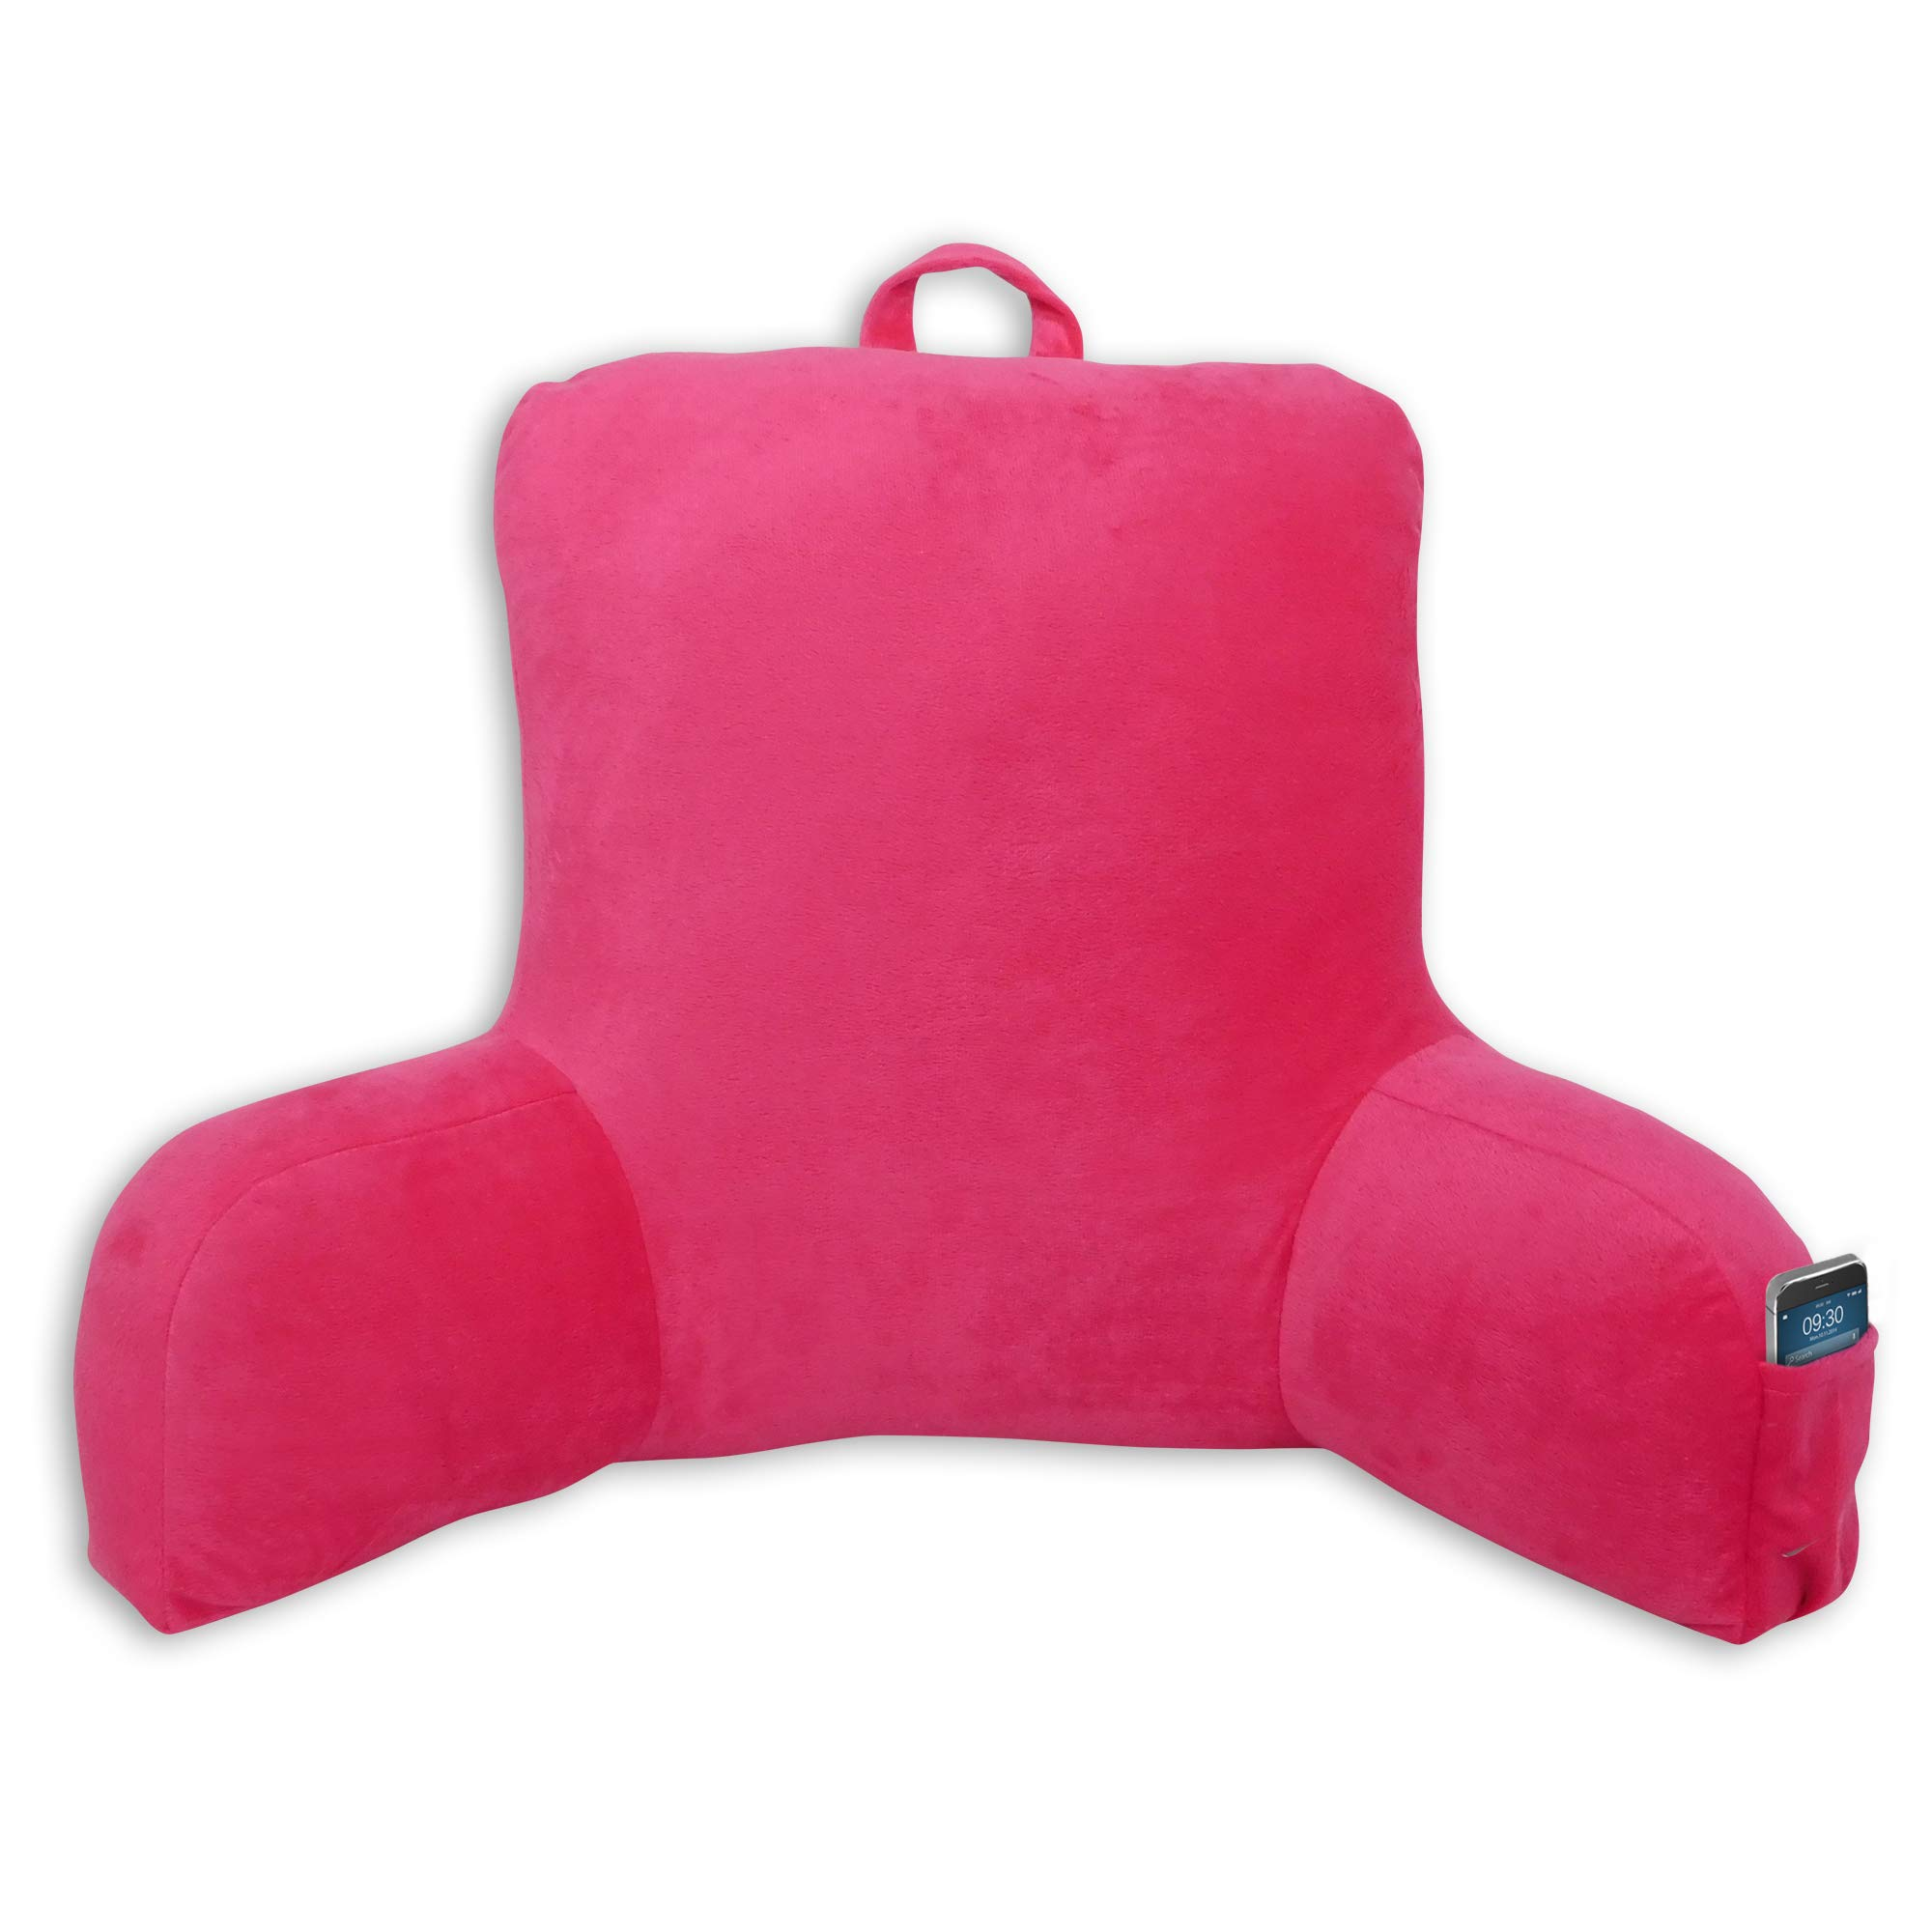 Mainstays Micro Plush Double Sided Arms Support Backrest Soft Pillow, Fuchsia by Mainstay